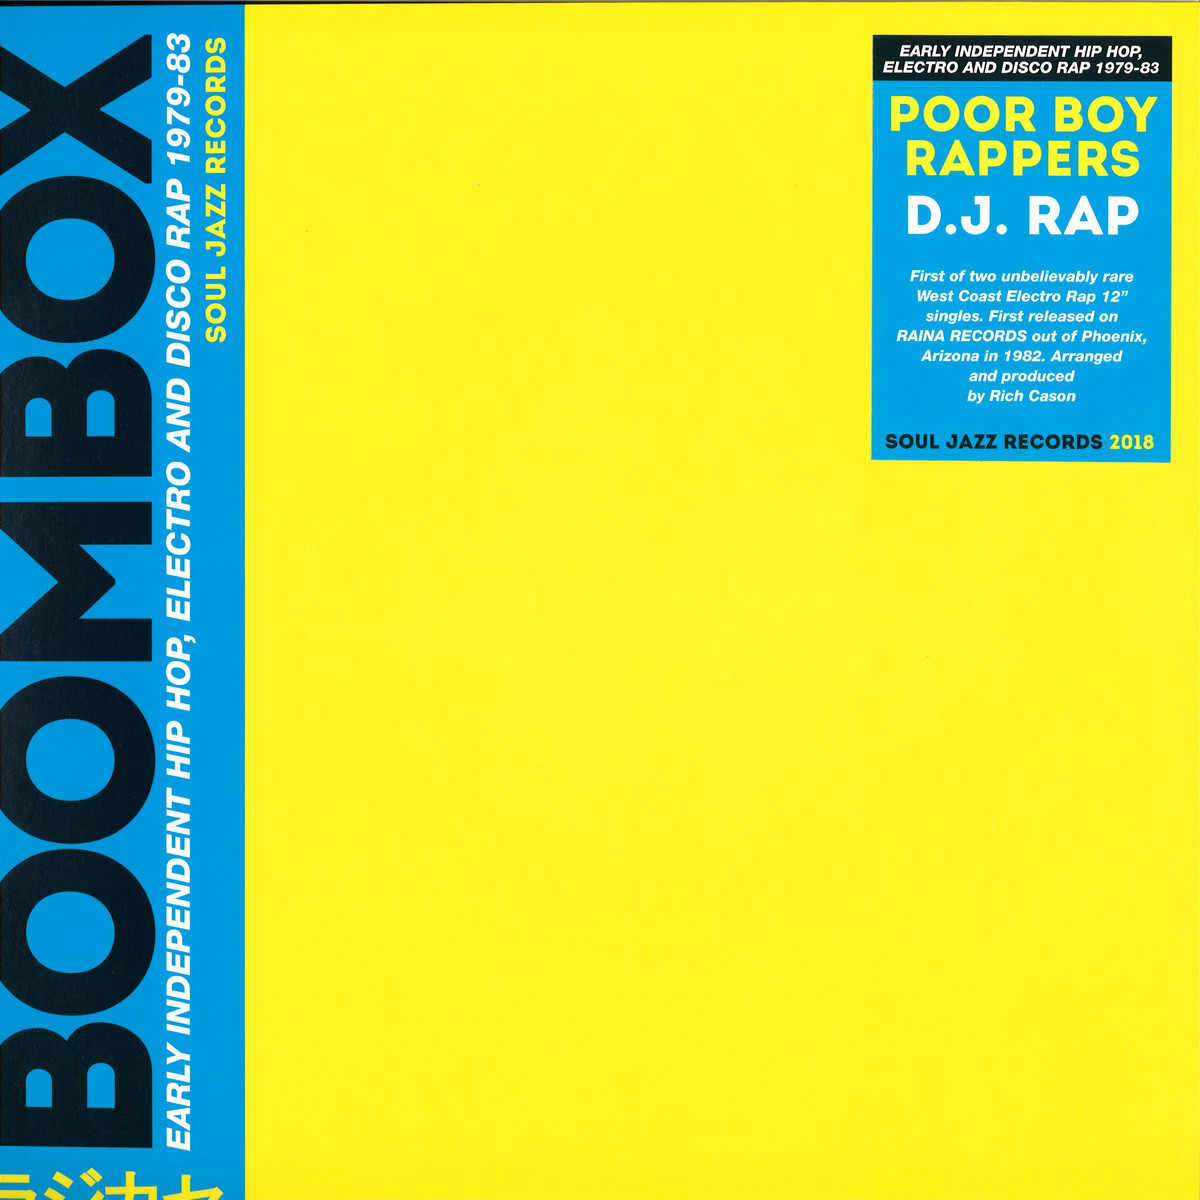 Poor Boy Rappers - The D J  Rap / Soul Jazz Records SJR416 - Vinyl